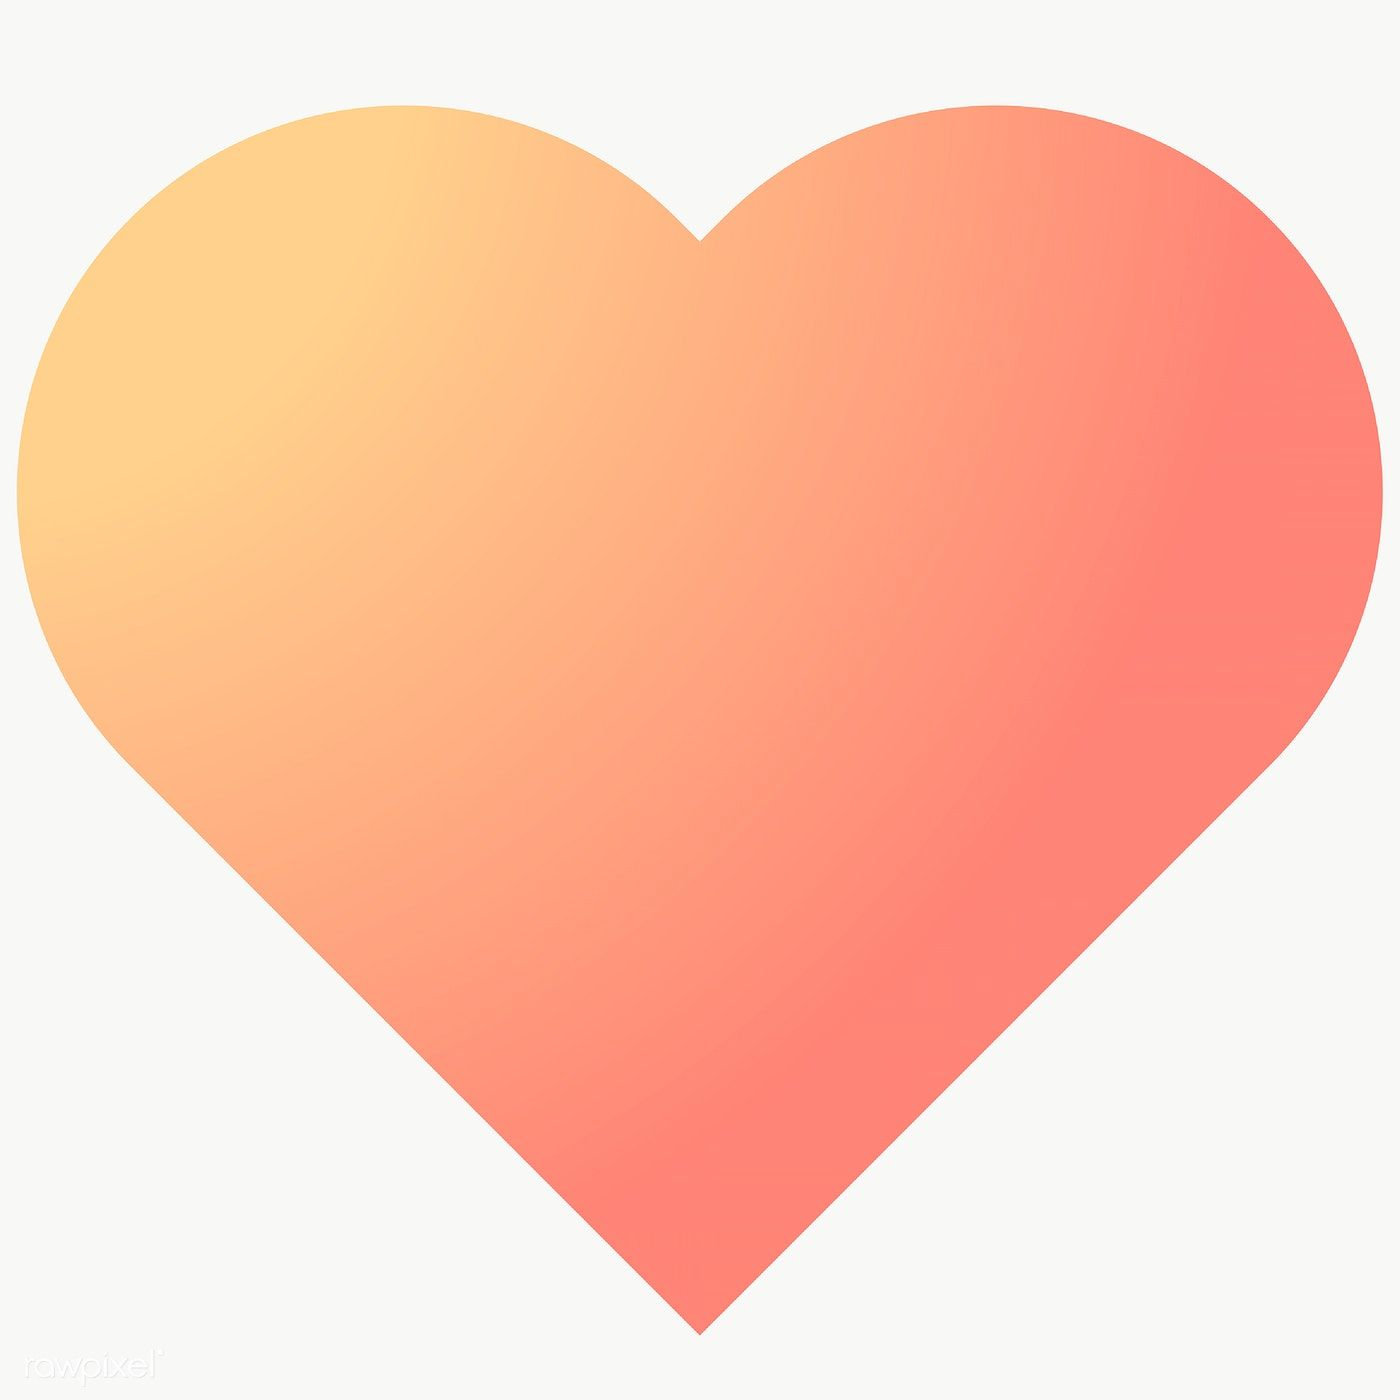 Download Premium Png Of Colorful Heart Gradient Element 1235084